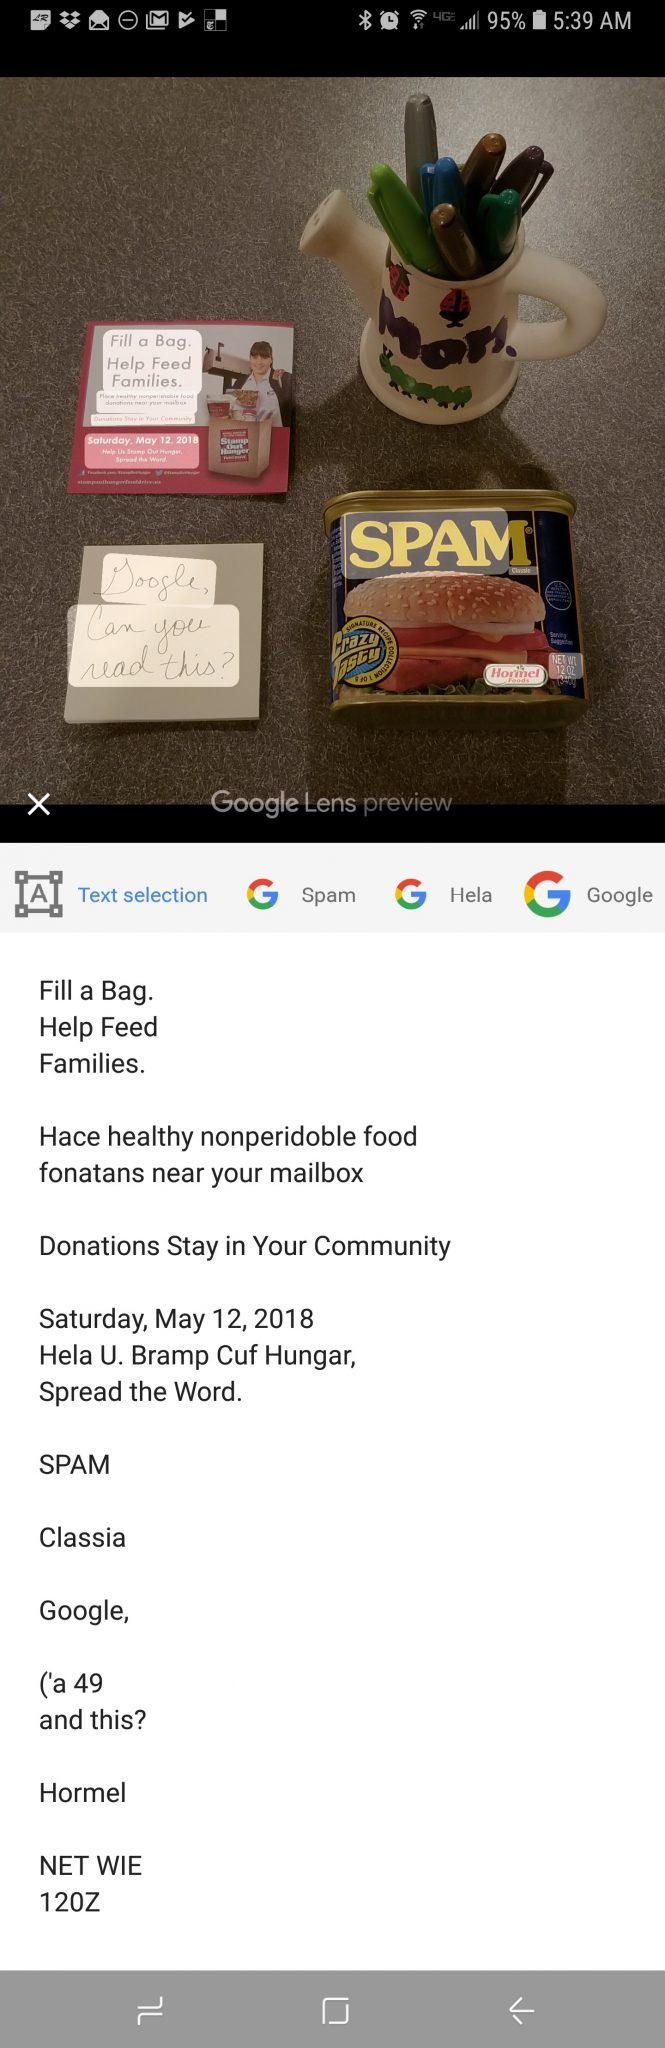 Text recognition in Google Lens is impressive but has room for improvement.